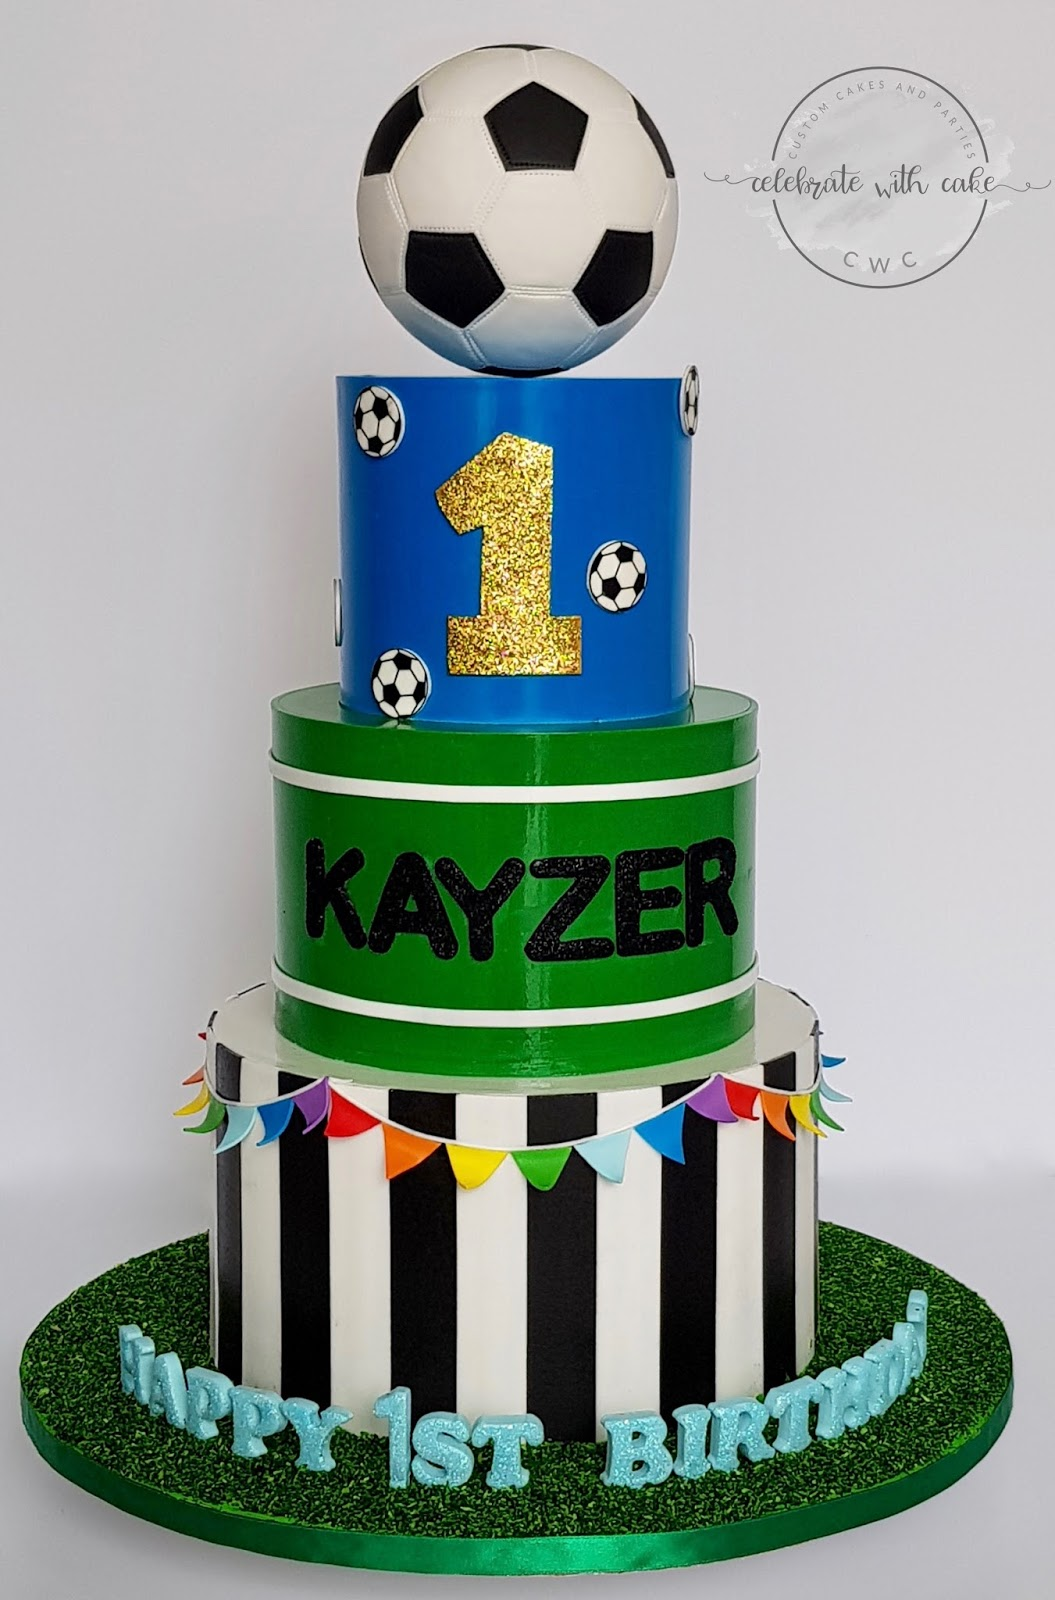 Celebrate With Cake Soccer Themed 1st Birthday 3 Tiers